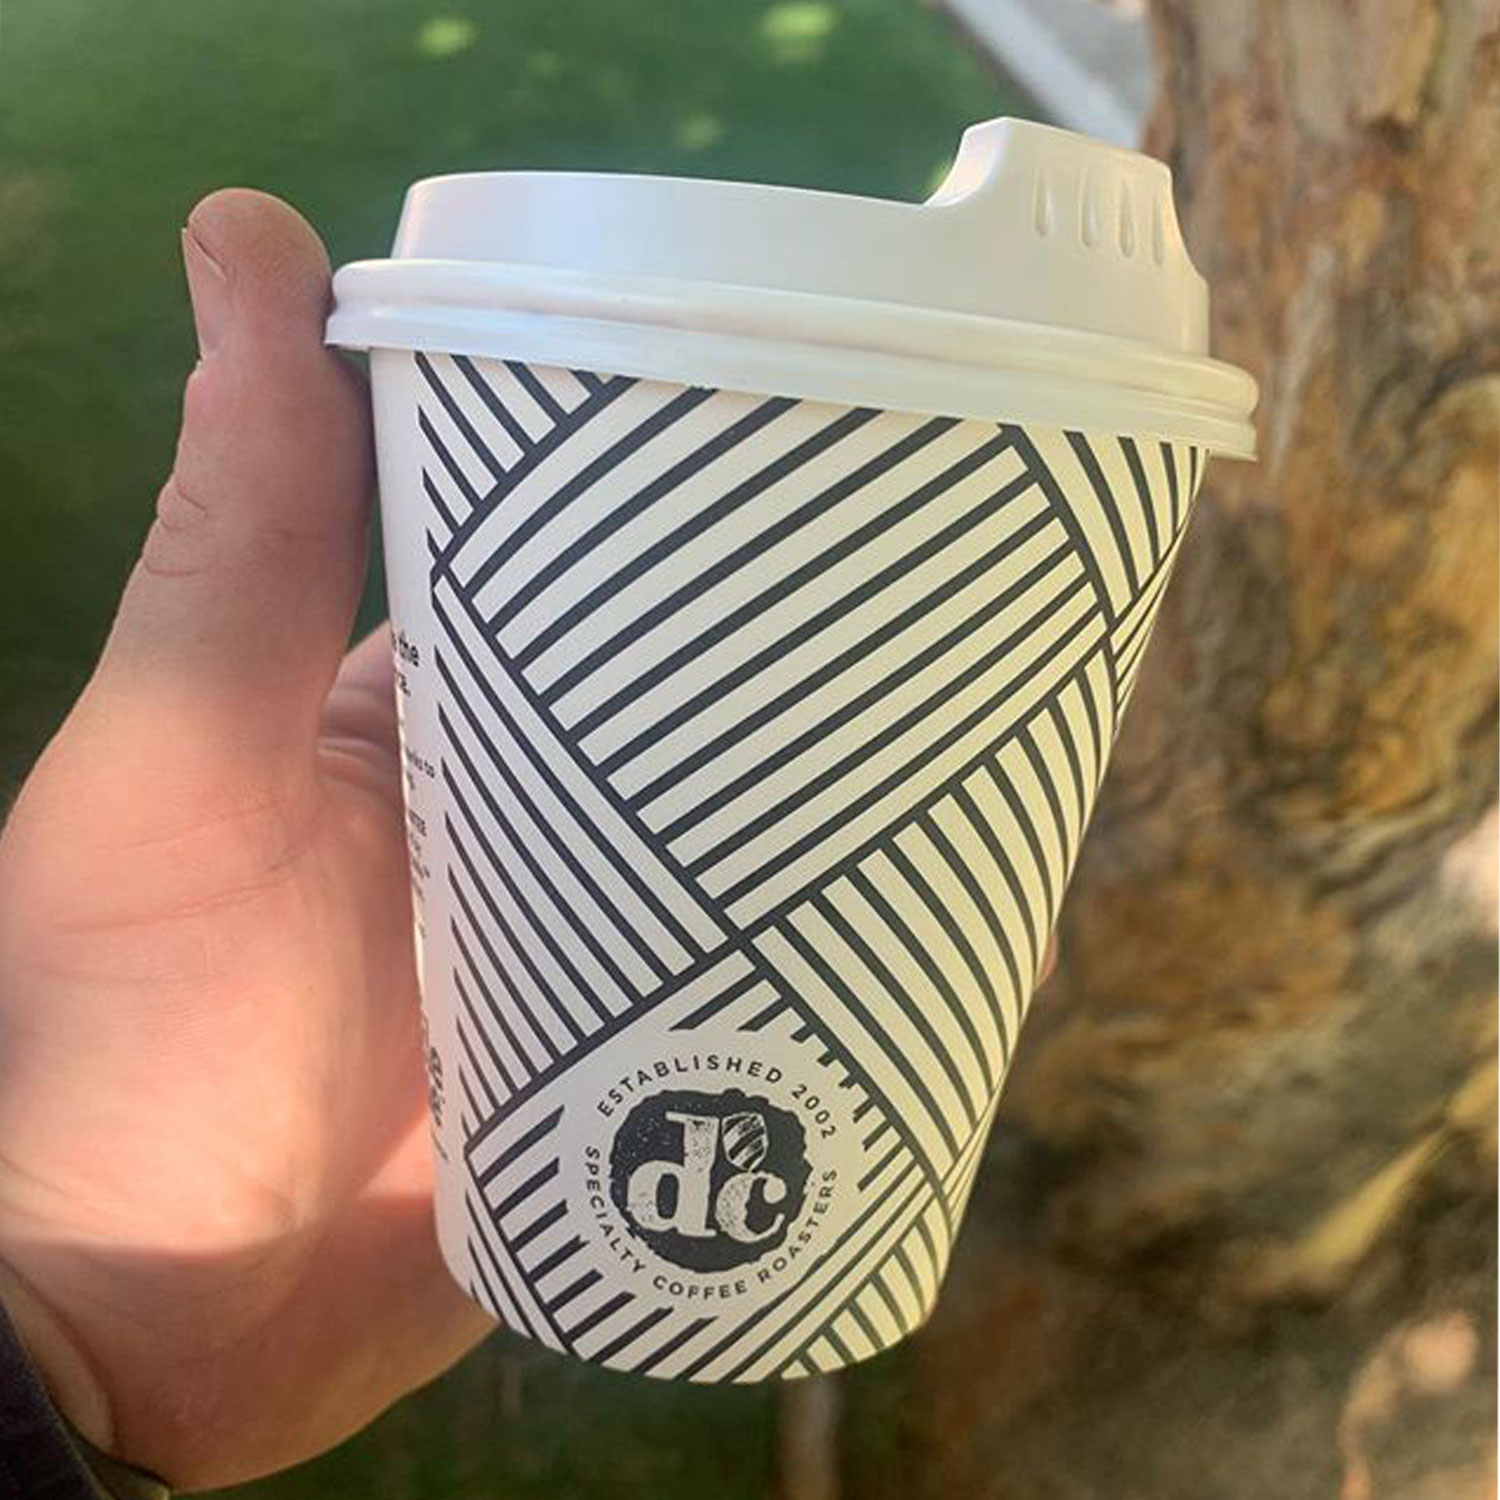 Image of DC Specialty coffee cup